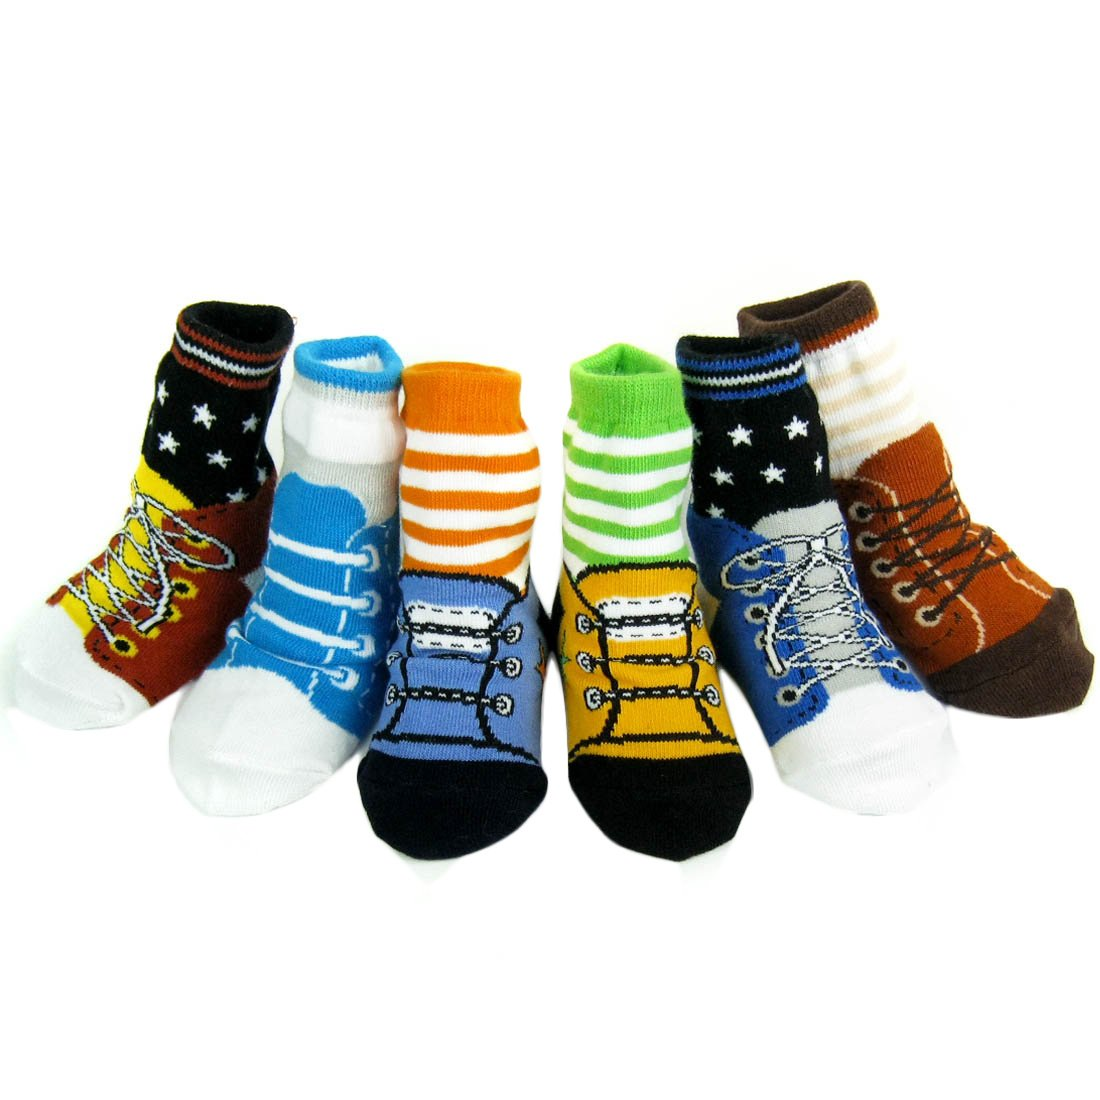 KF Baby Non-Skid Baby Boy Shoe Socks, 6 pairs, for 12-24 Months kilofly